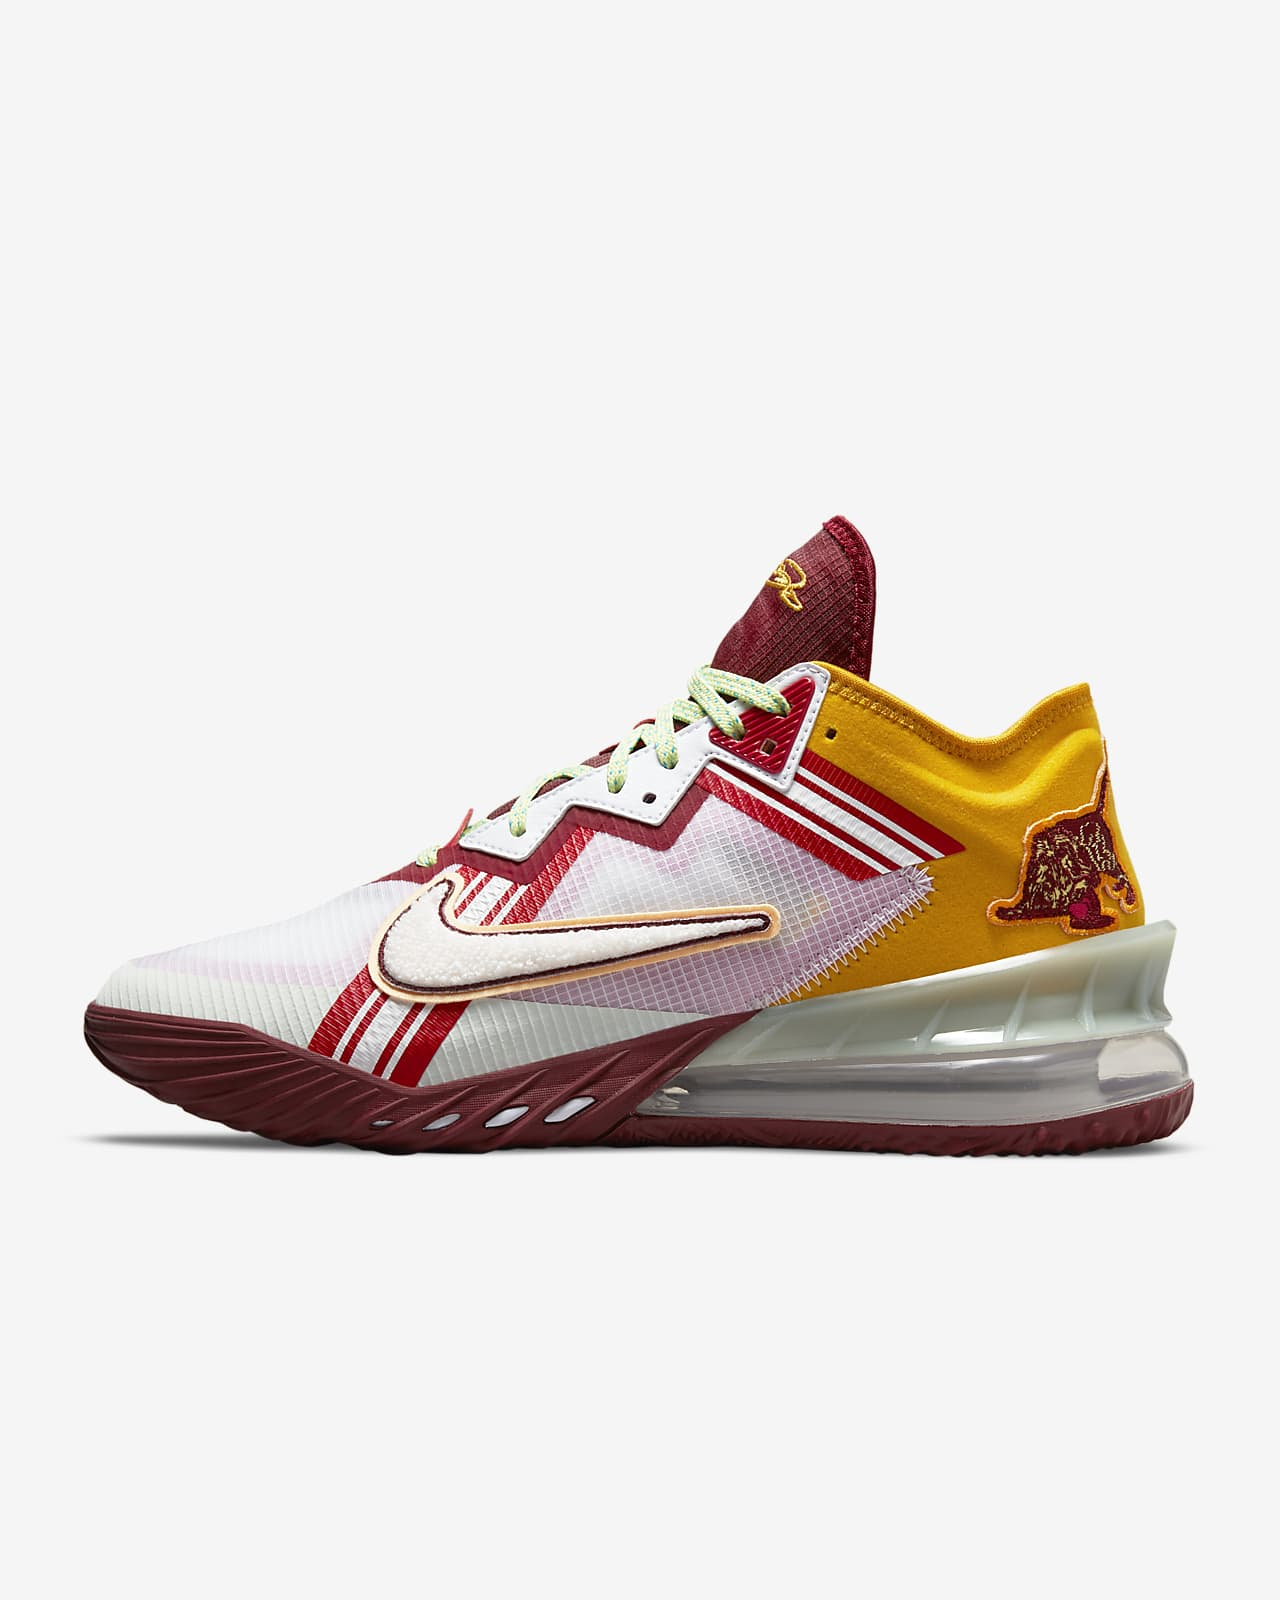 Chaussure de basketball LeBron 18 Low x Mimi Plange «Higher Learning»